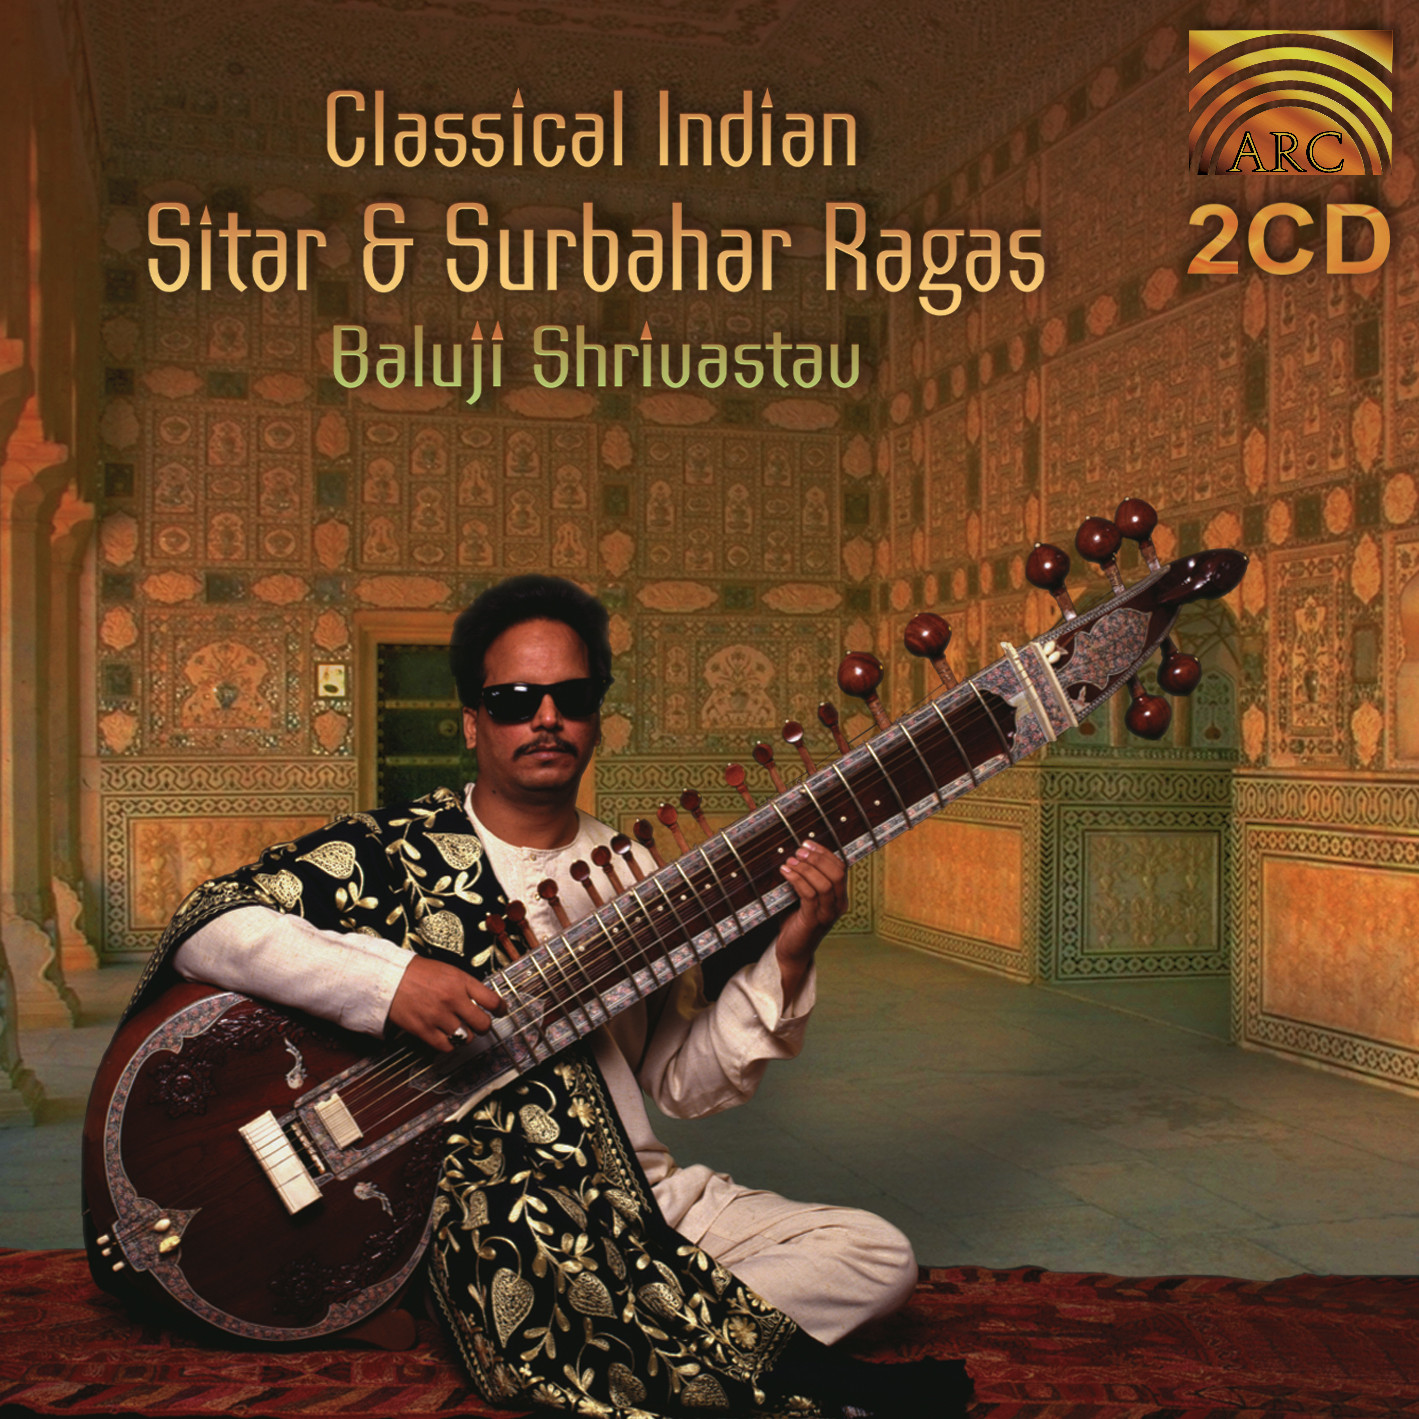 EUCD1572 Classical Indian Sitar & Surbahar Ragas